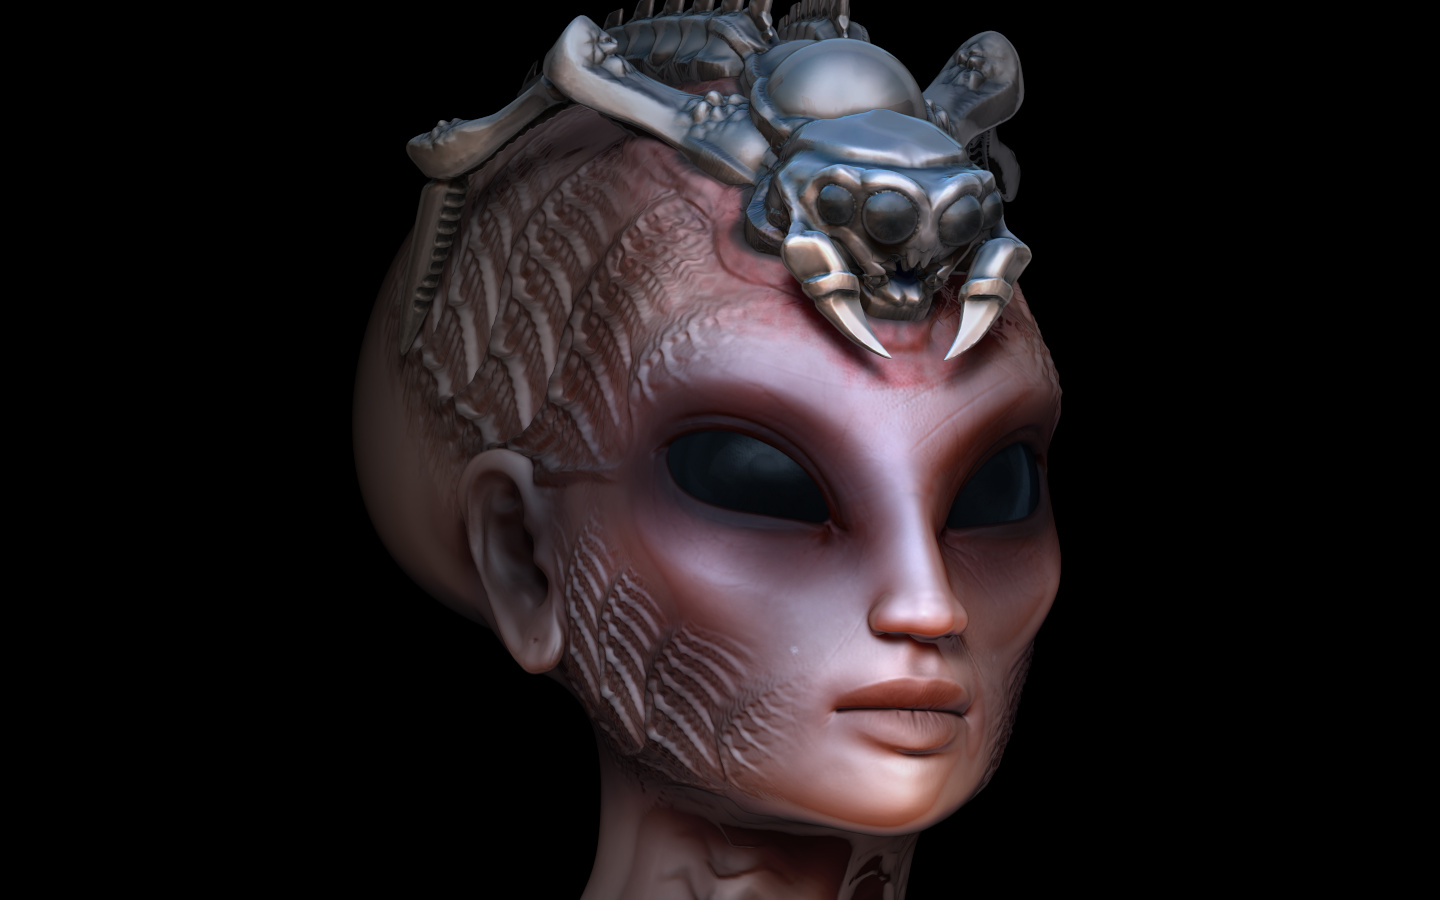 Hybrid alien woman queen with embedded parasite crown side view